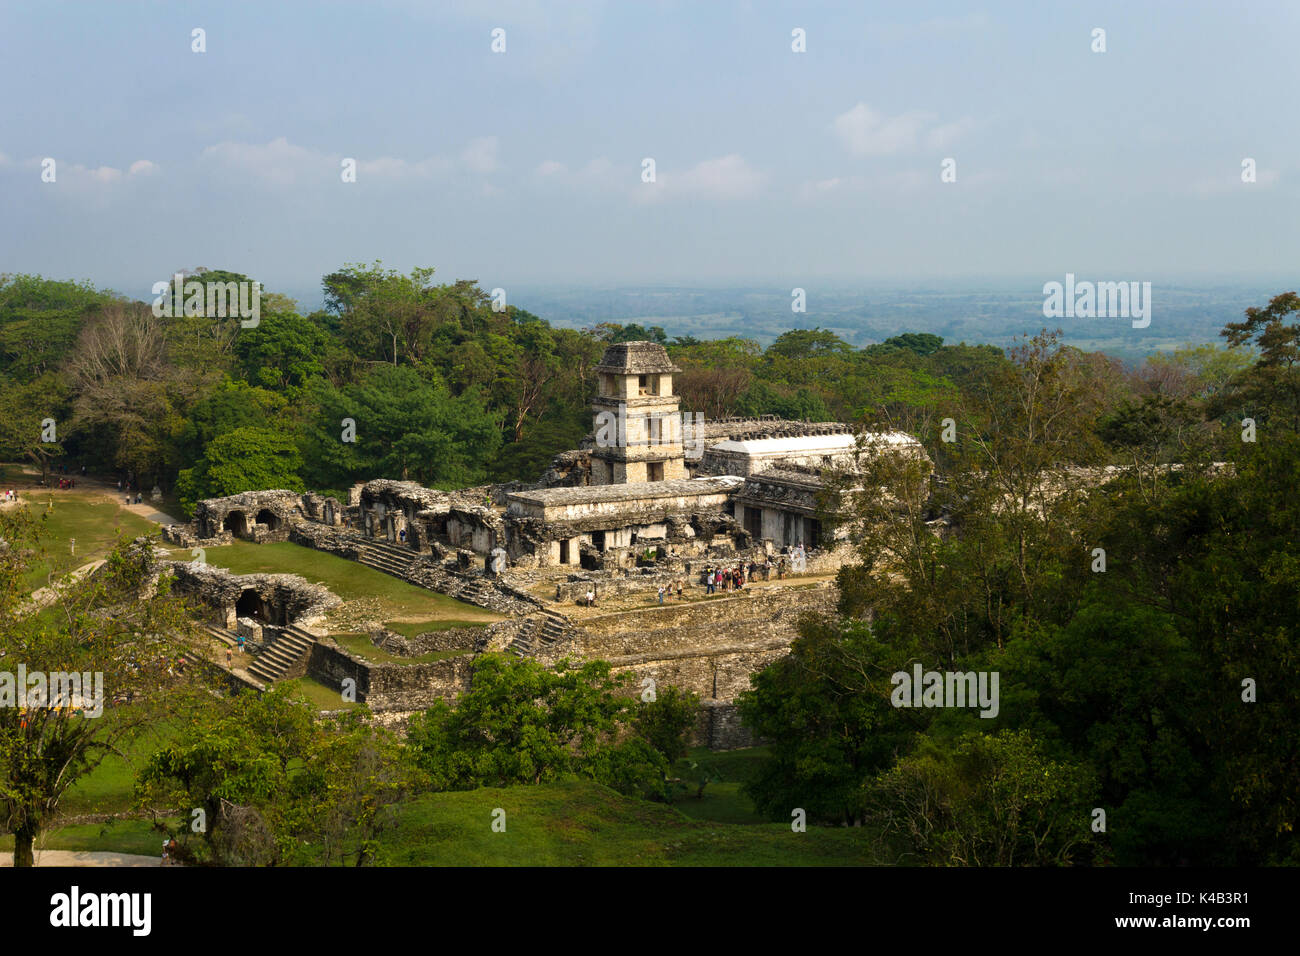 Early morning sun rises over Palenque National Park in Mexico - Stock Image